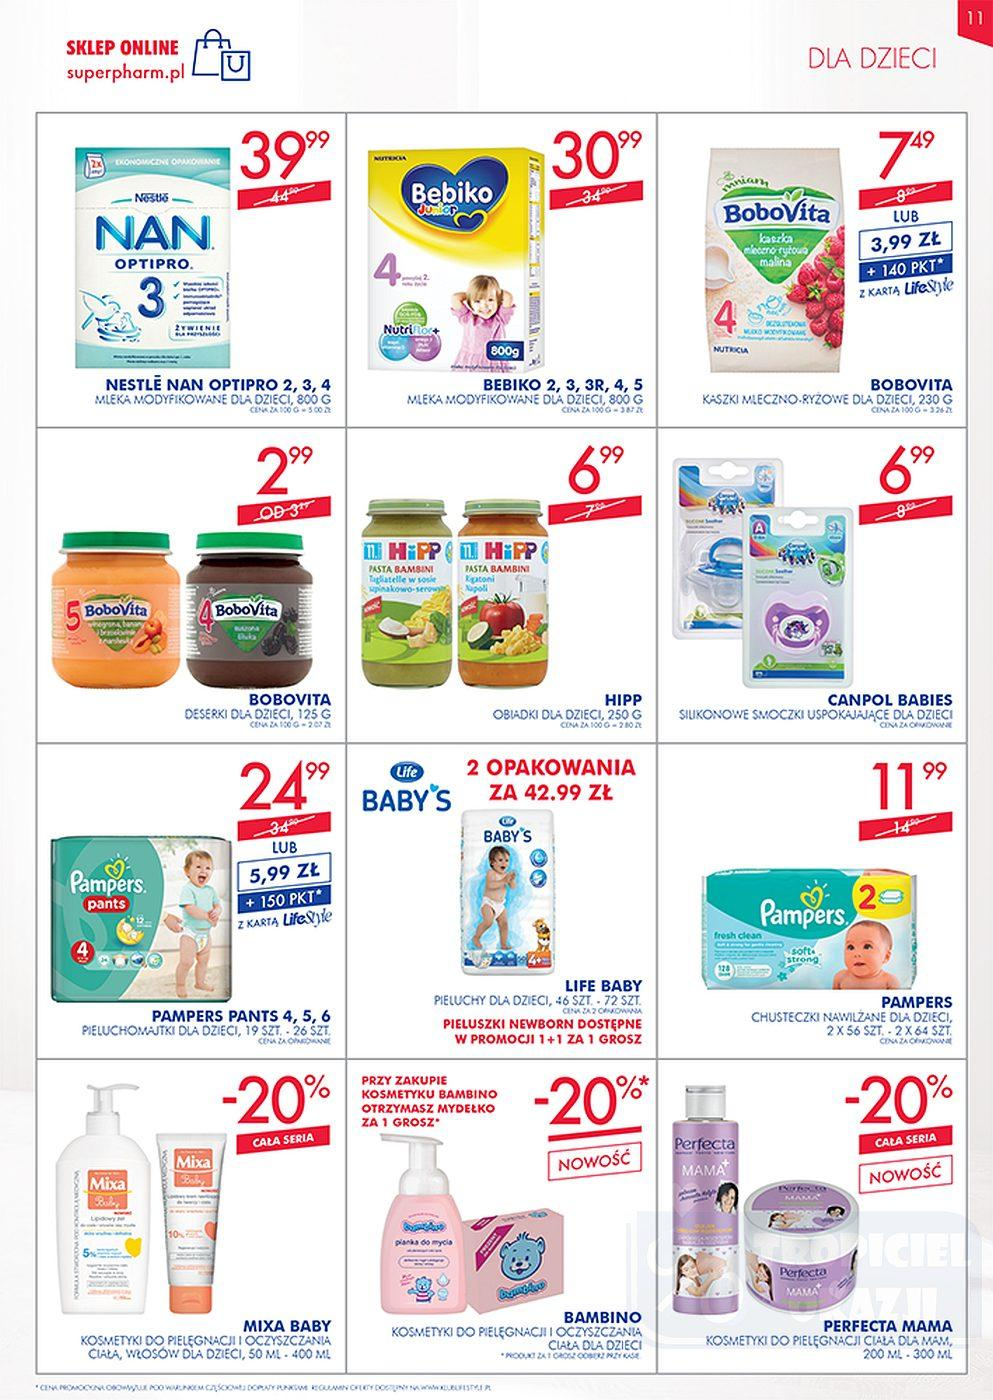 Gazetka promocyjna Superpharm do 10/10/2018 str.11